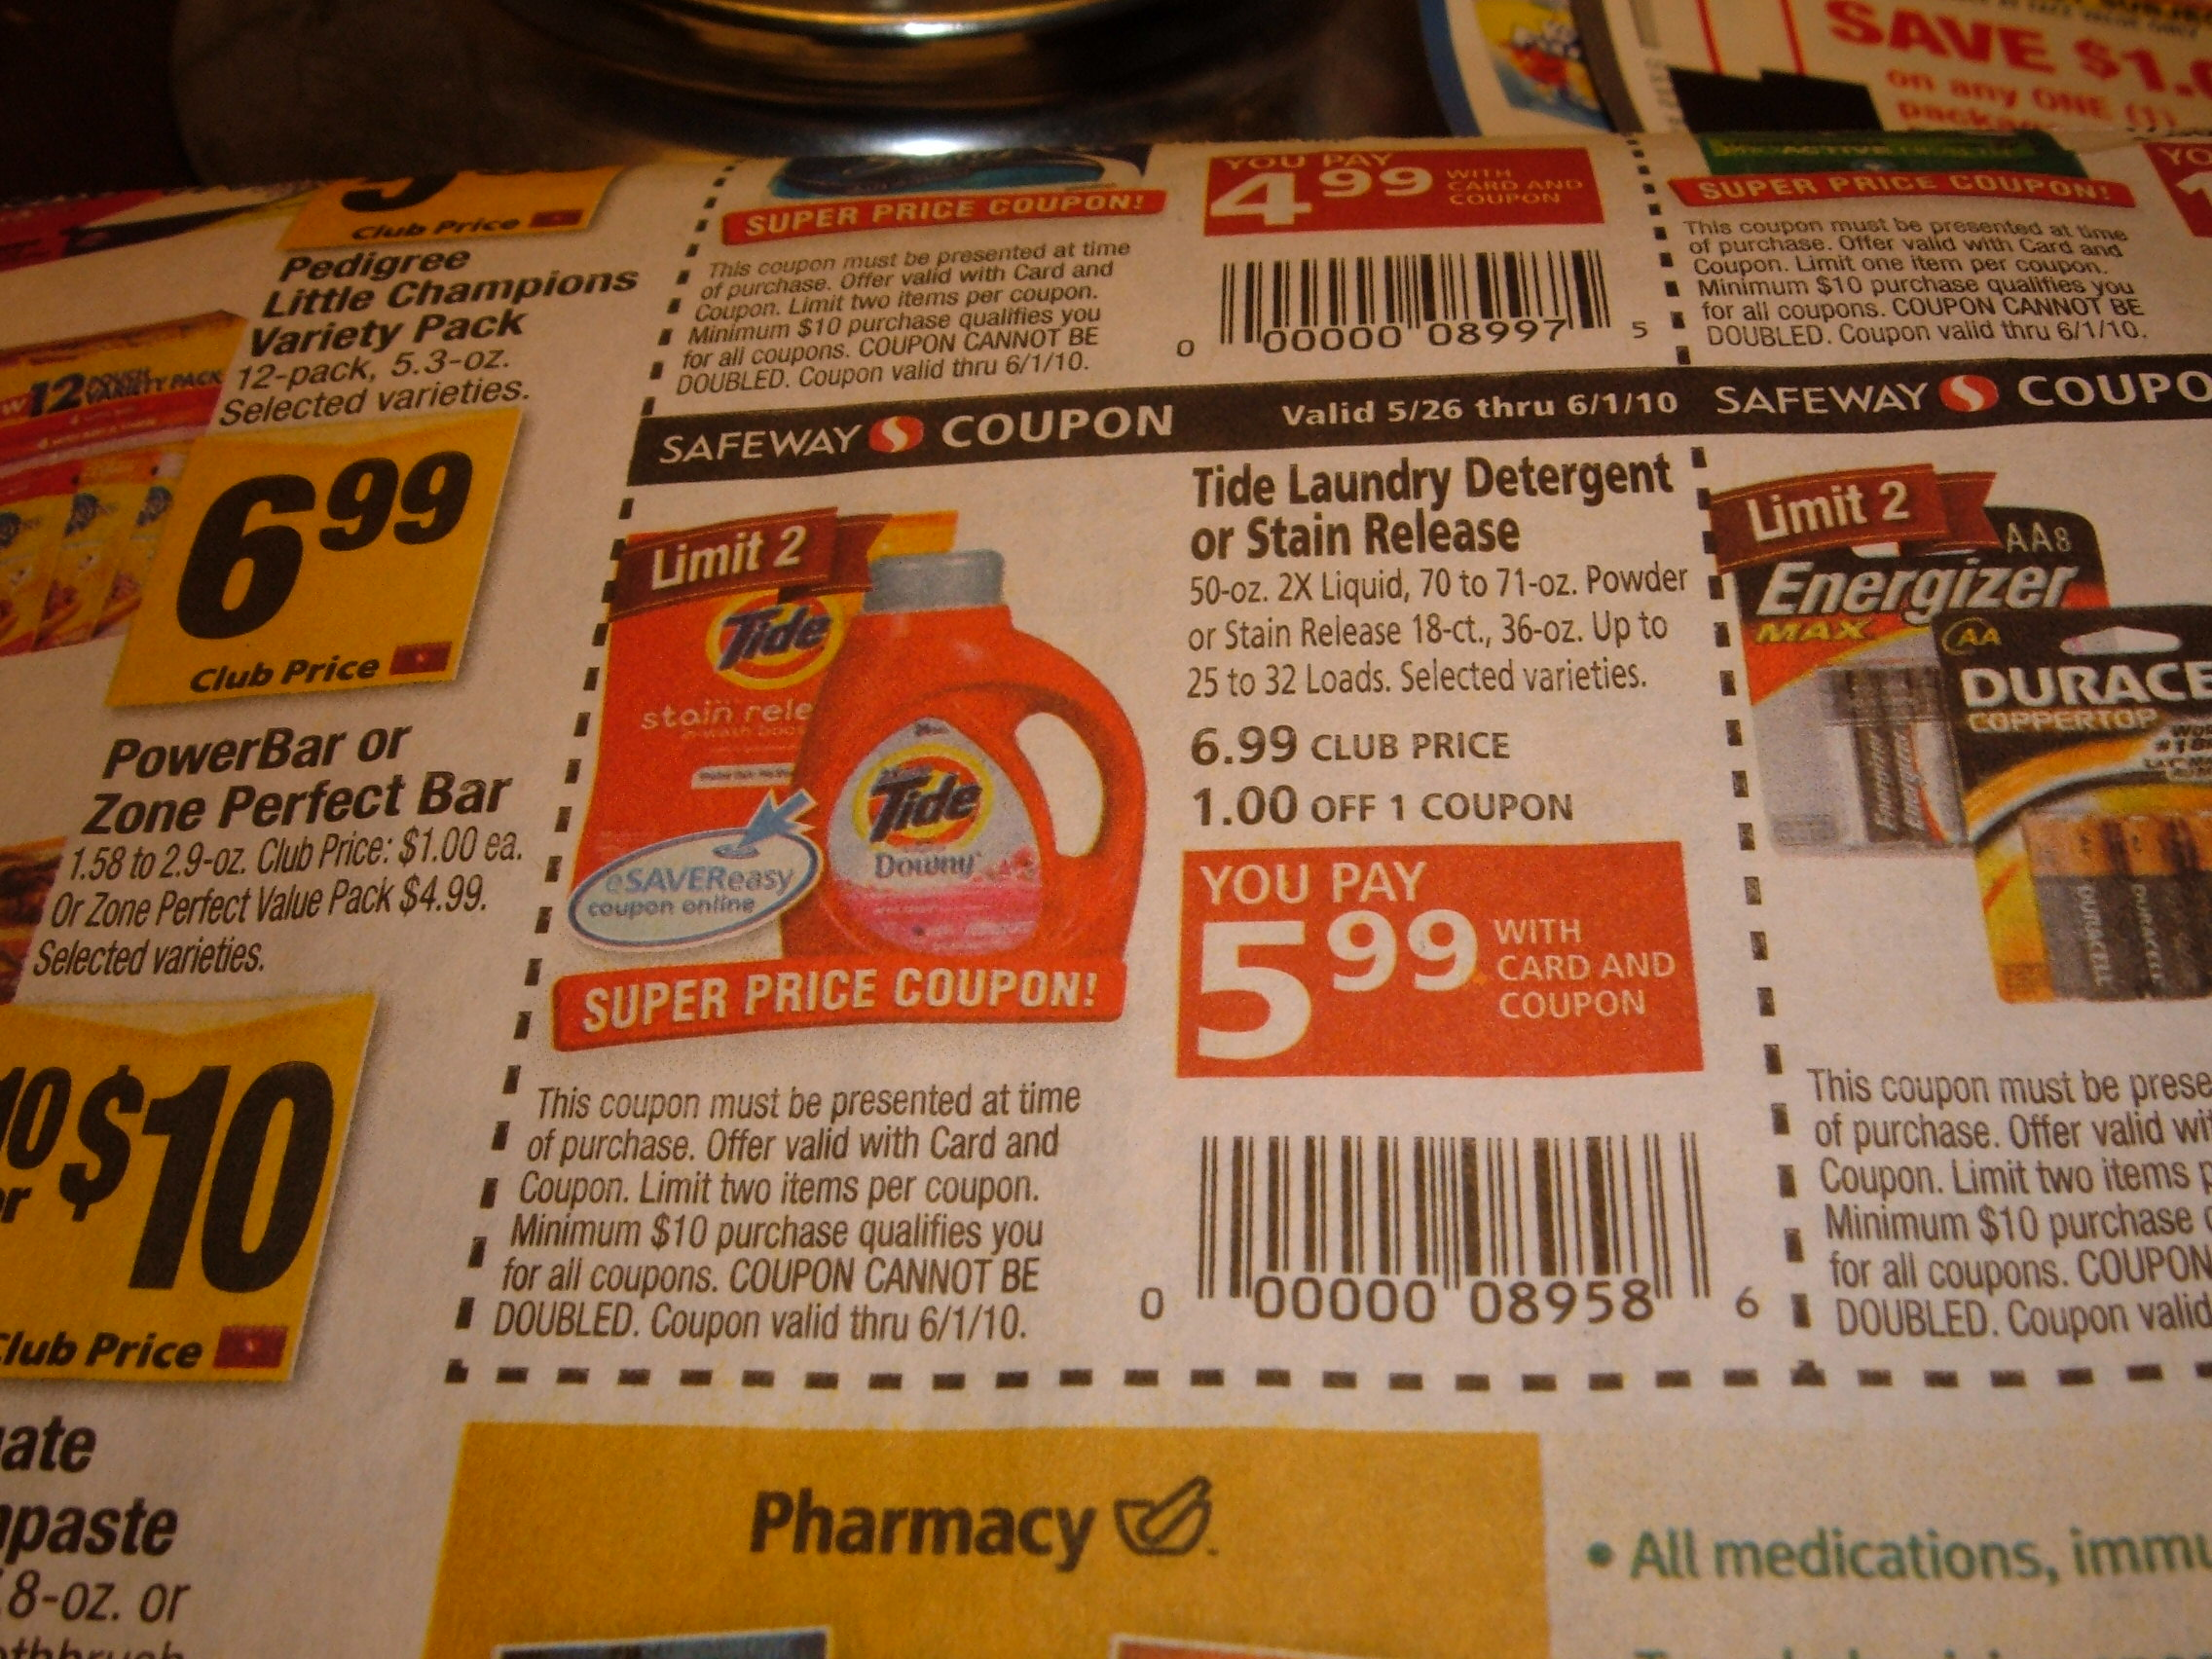 p g everyday chevy trucks 4 door free tide stain release laundry detergent at safeway